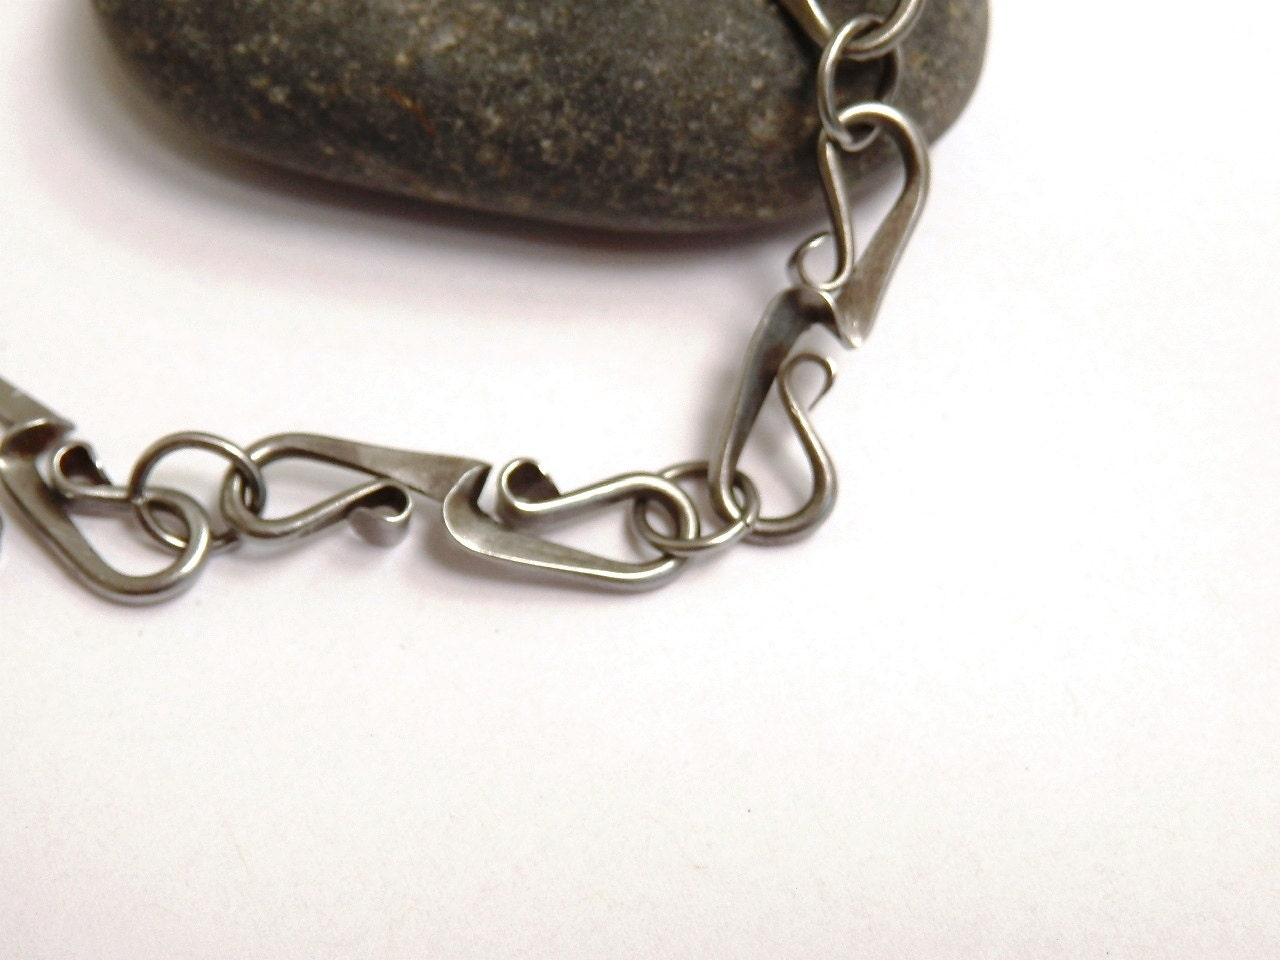 Forged Link Chains : Bracelet handmade link chain forged steel by jeaninedesigns